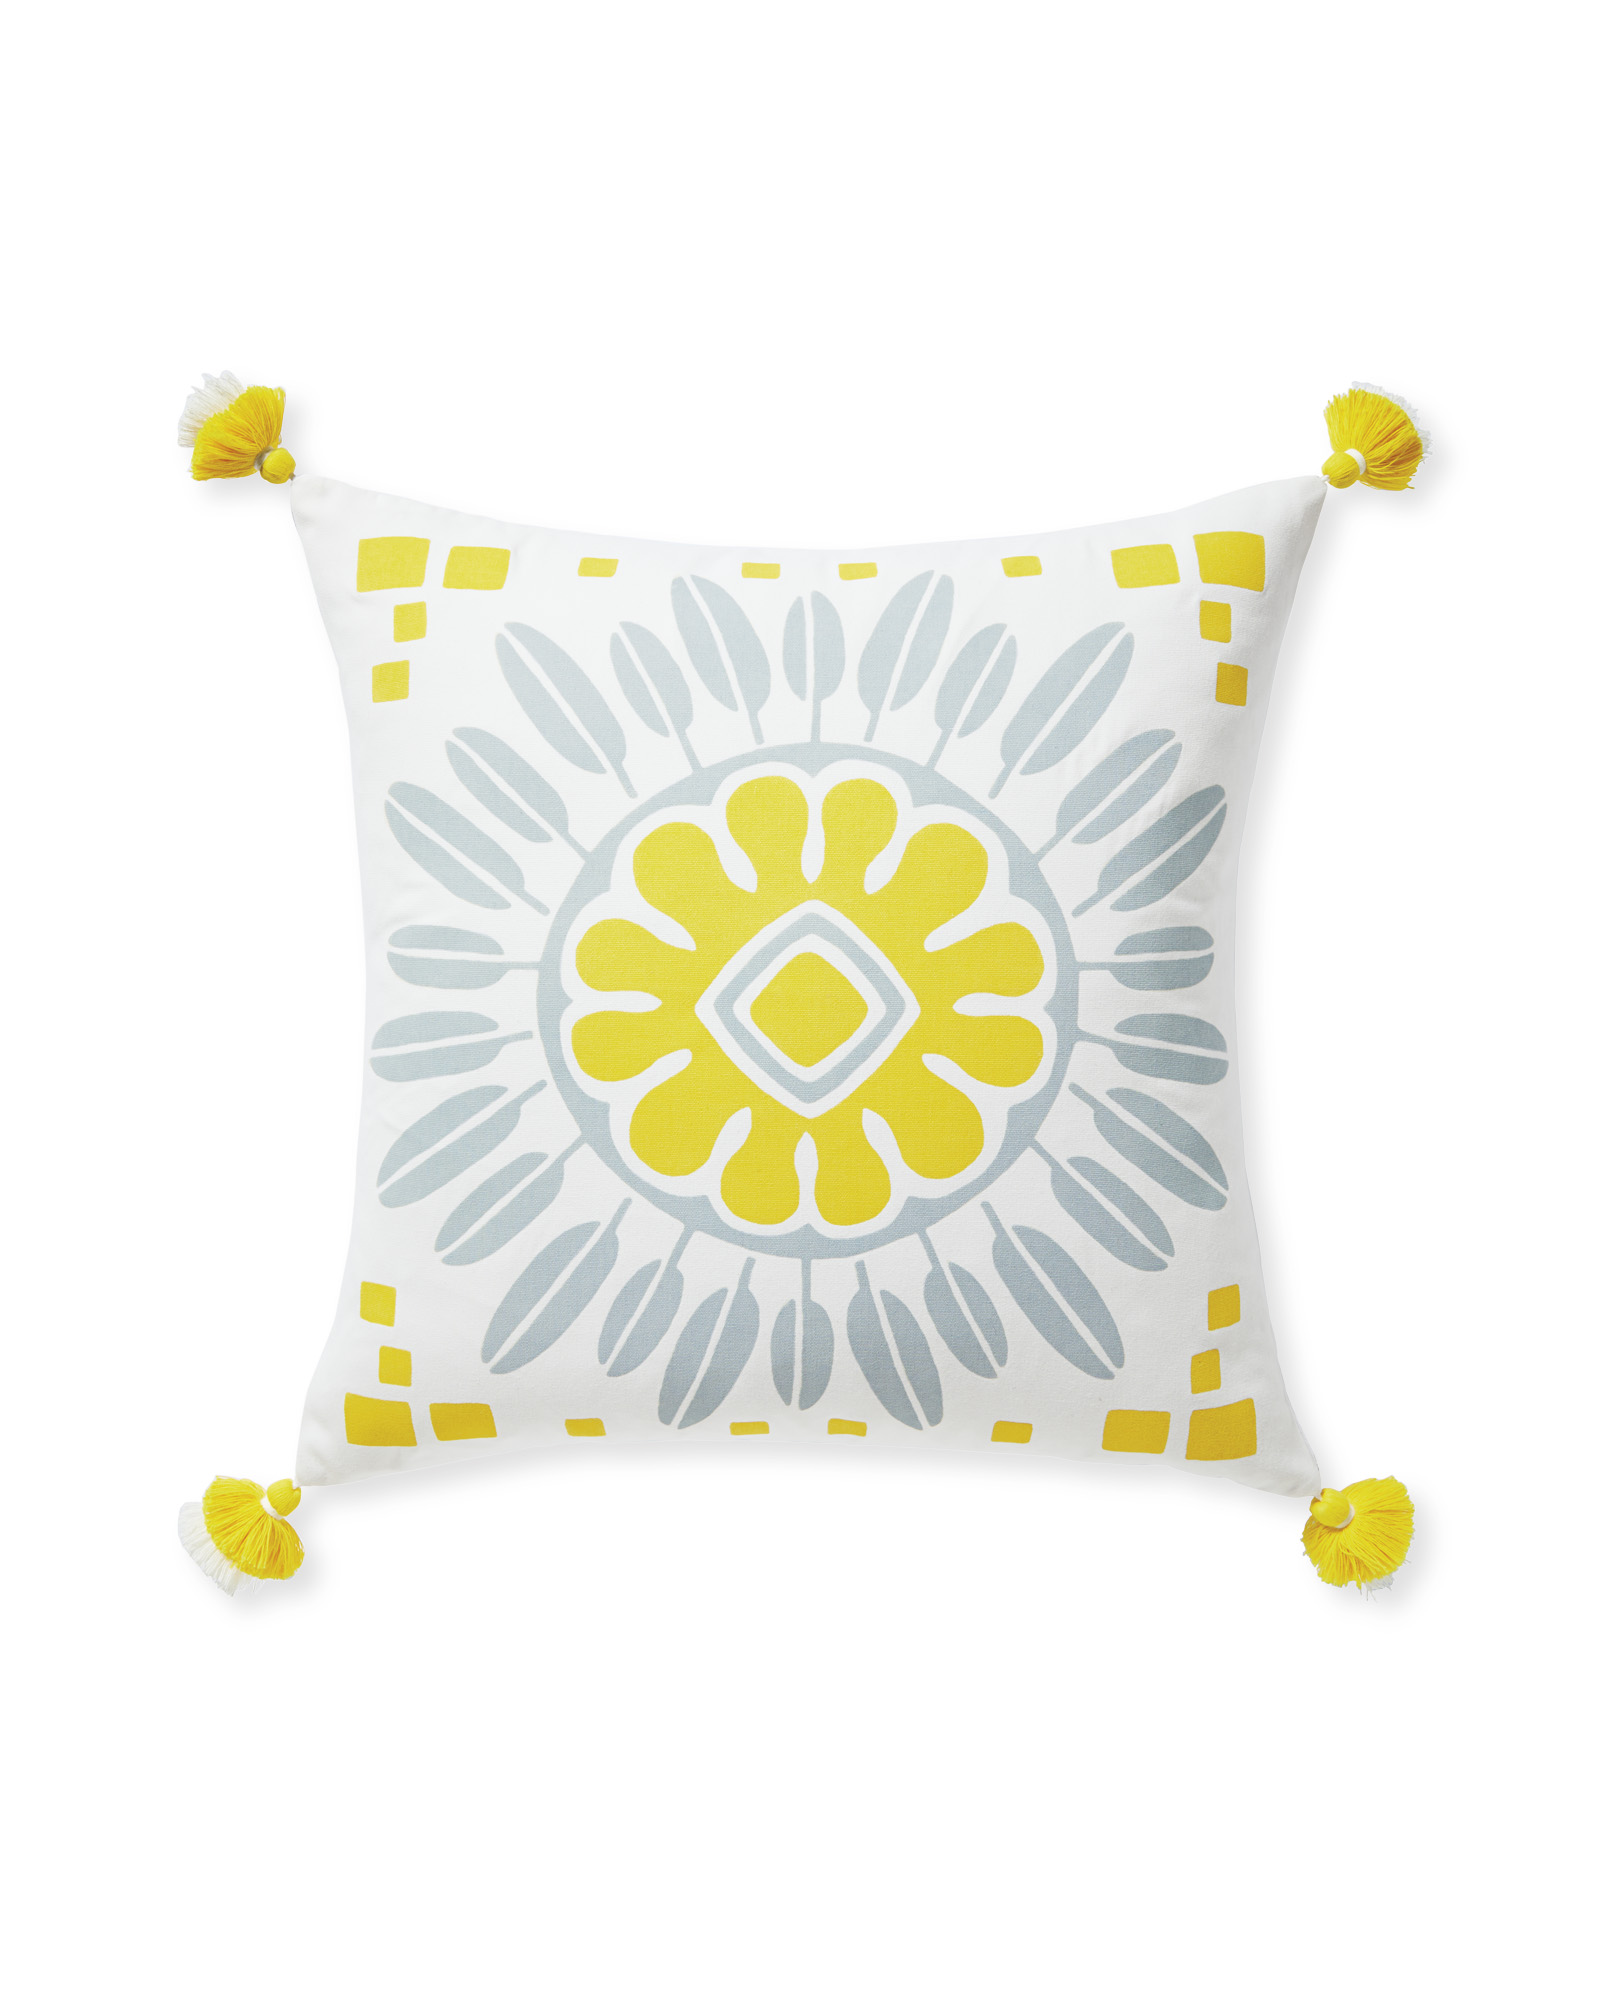 Campania Medallion Pillow Cover, Canary